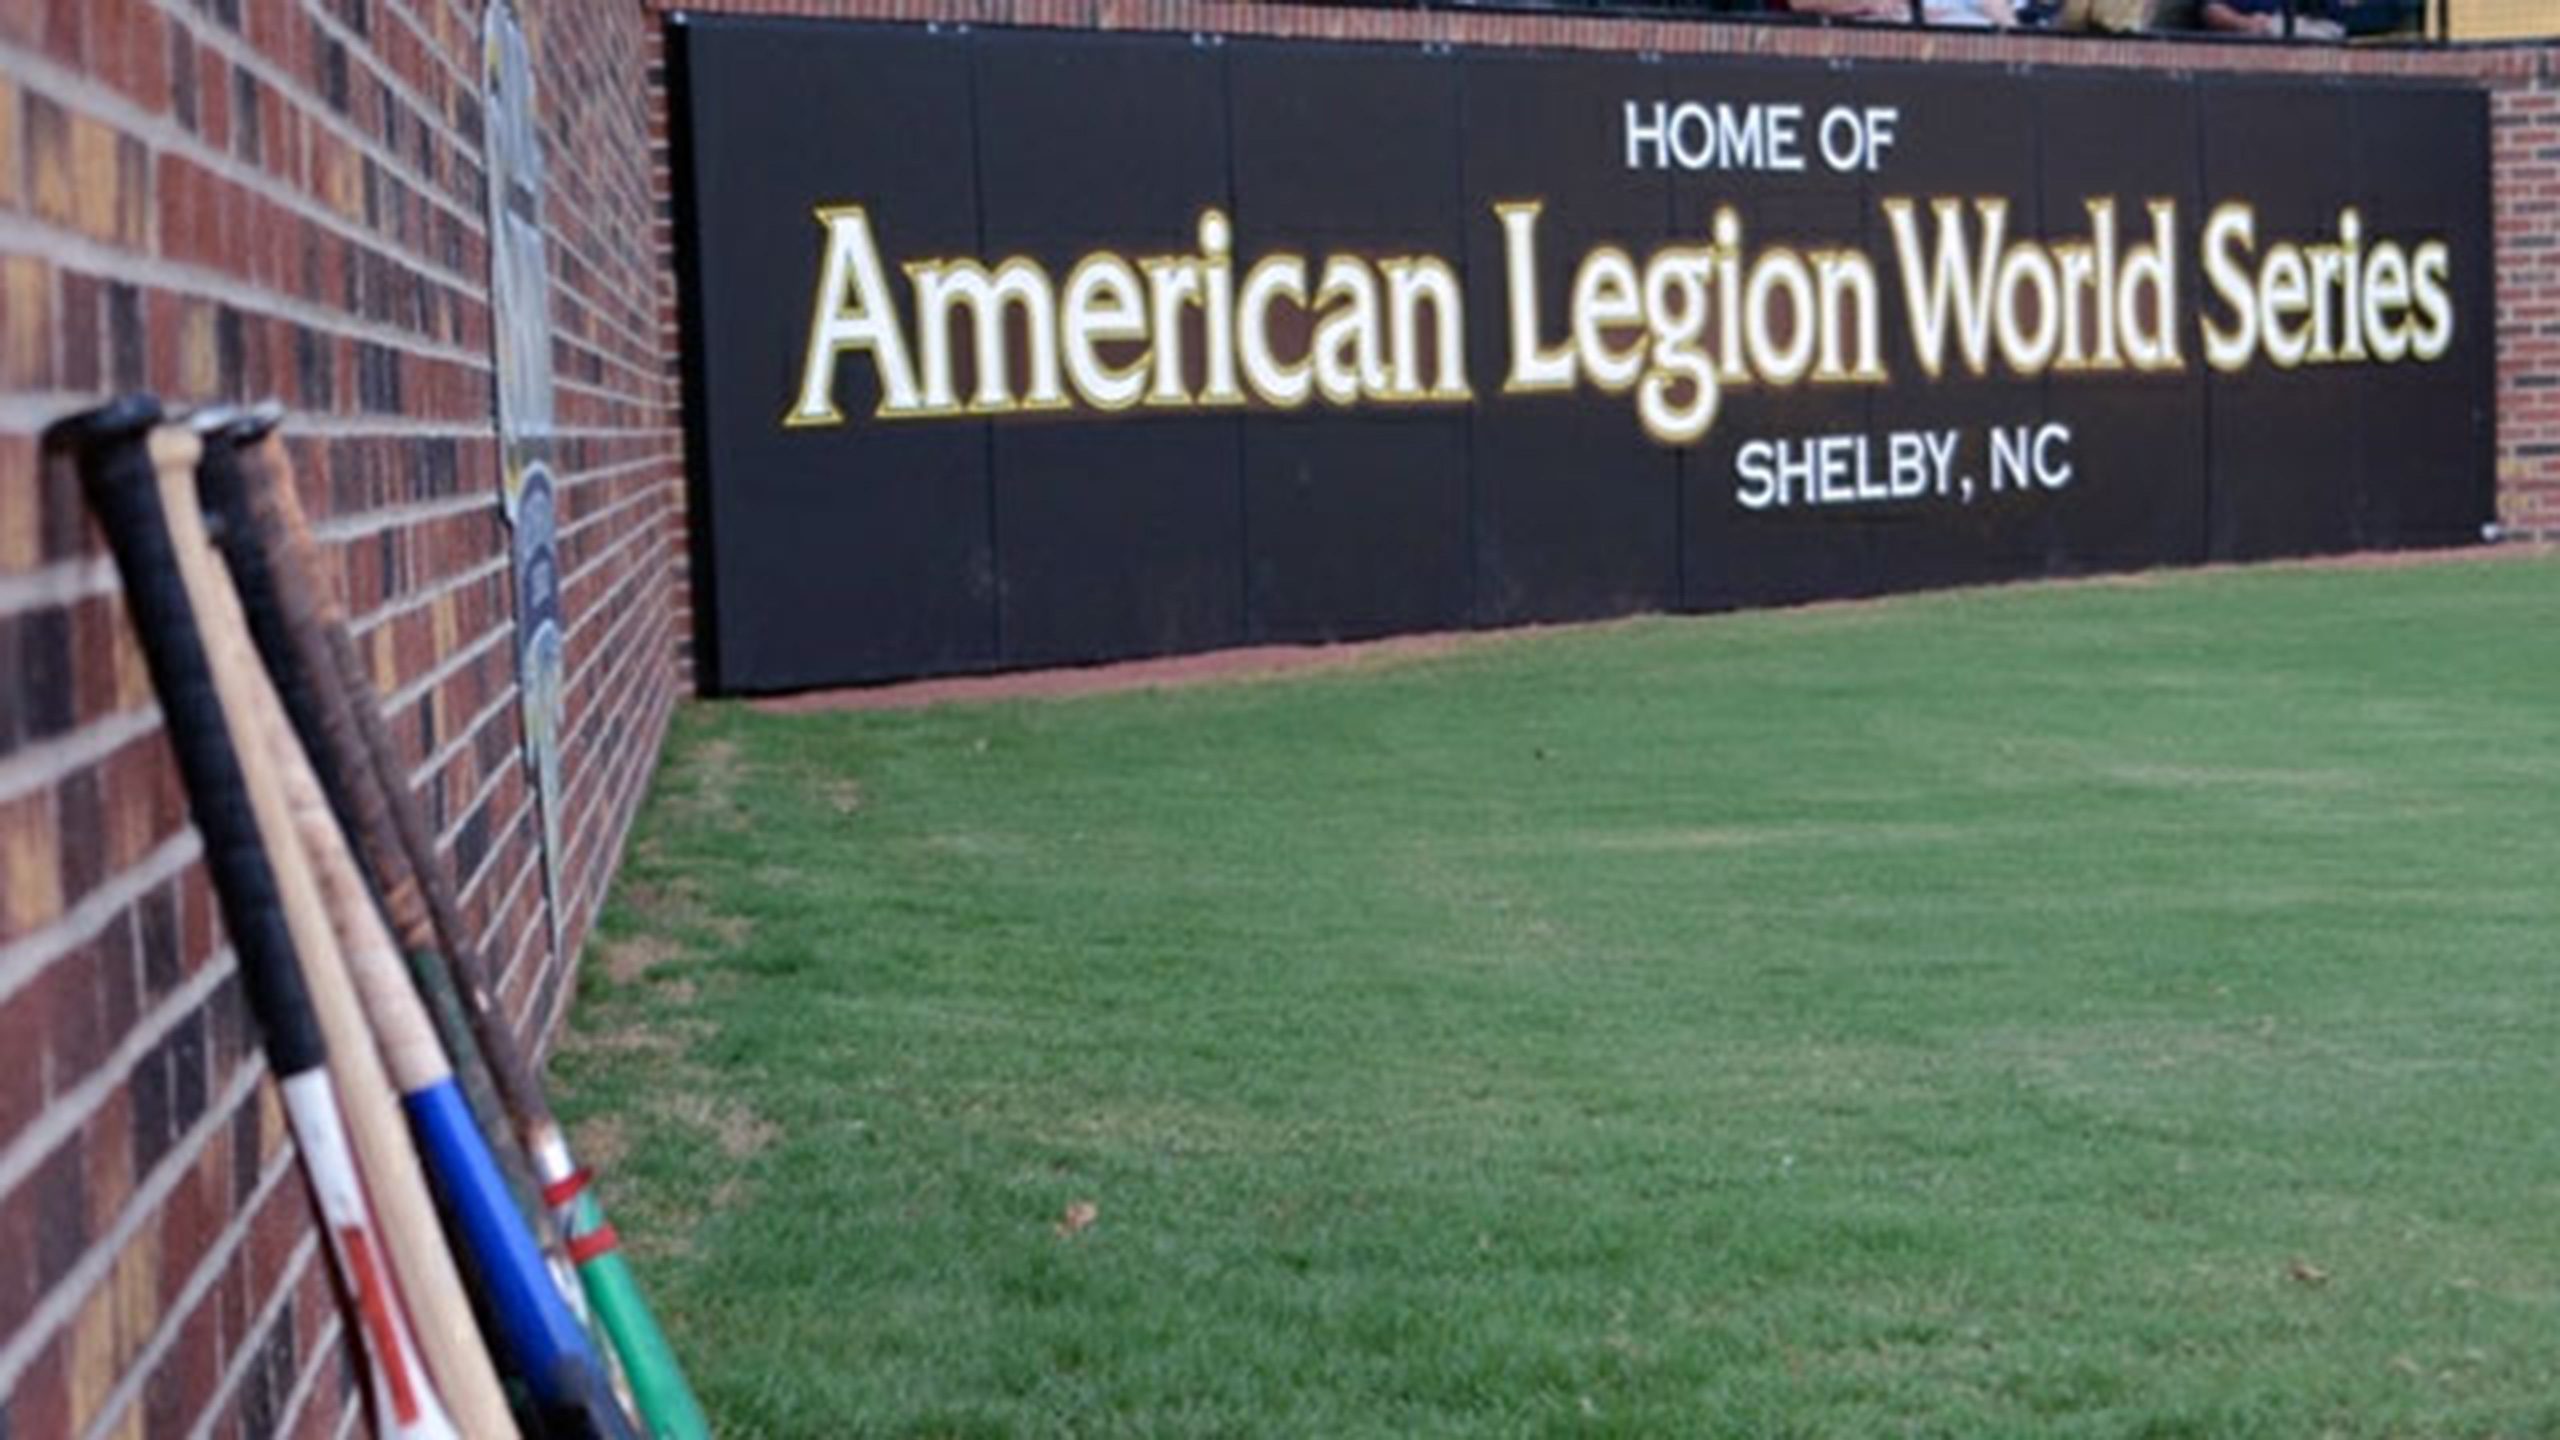 Southeast vs. Great Lakes (American Legion)